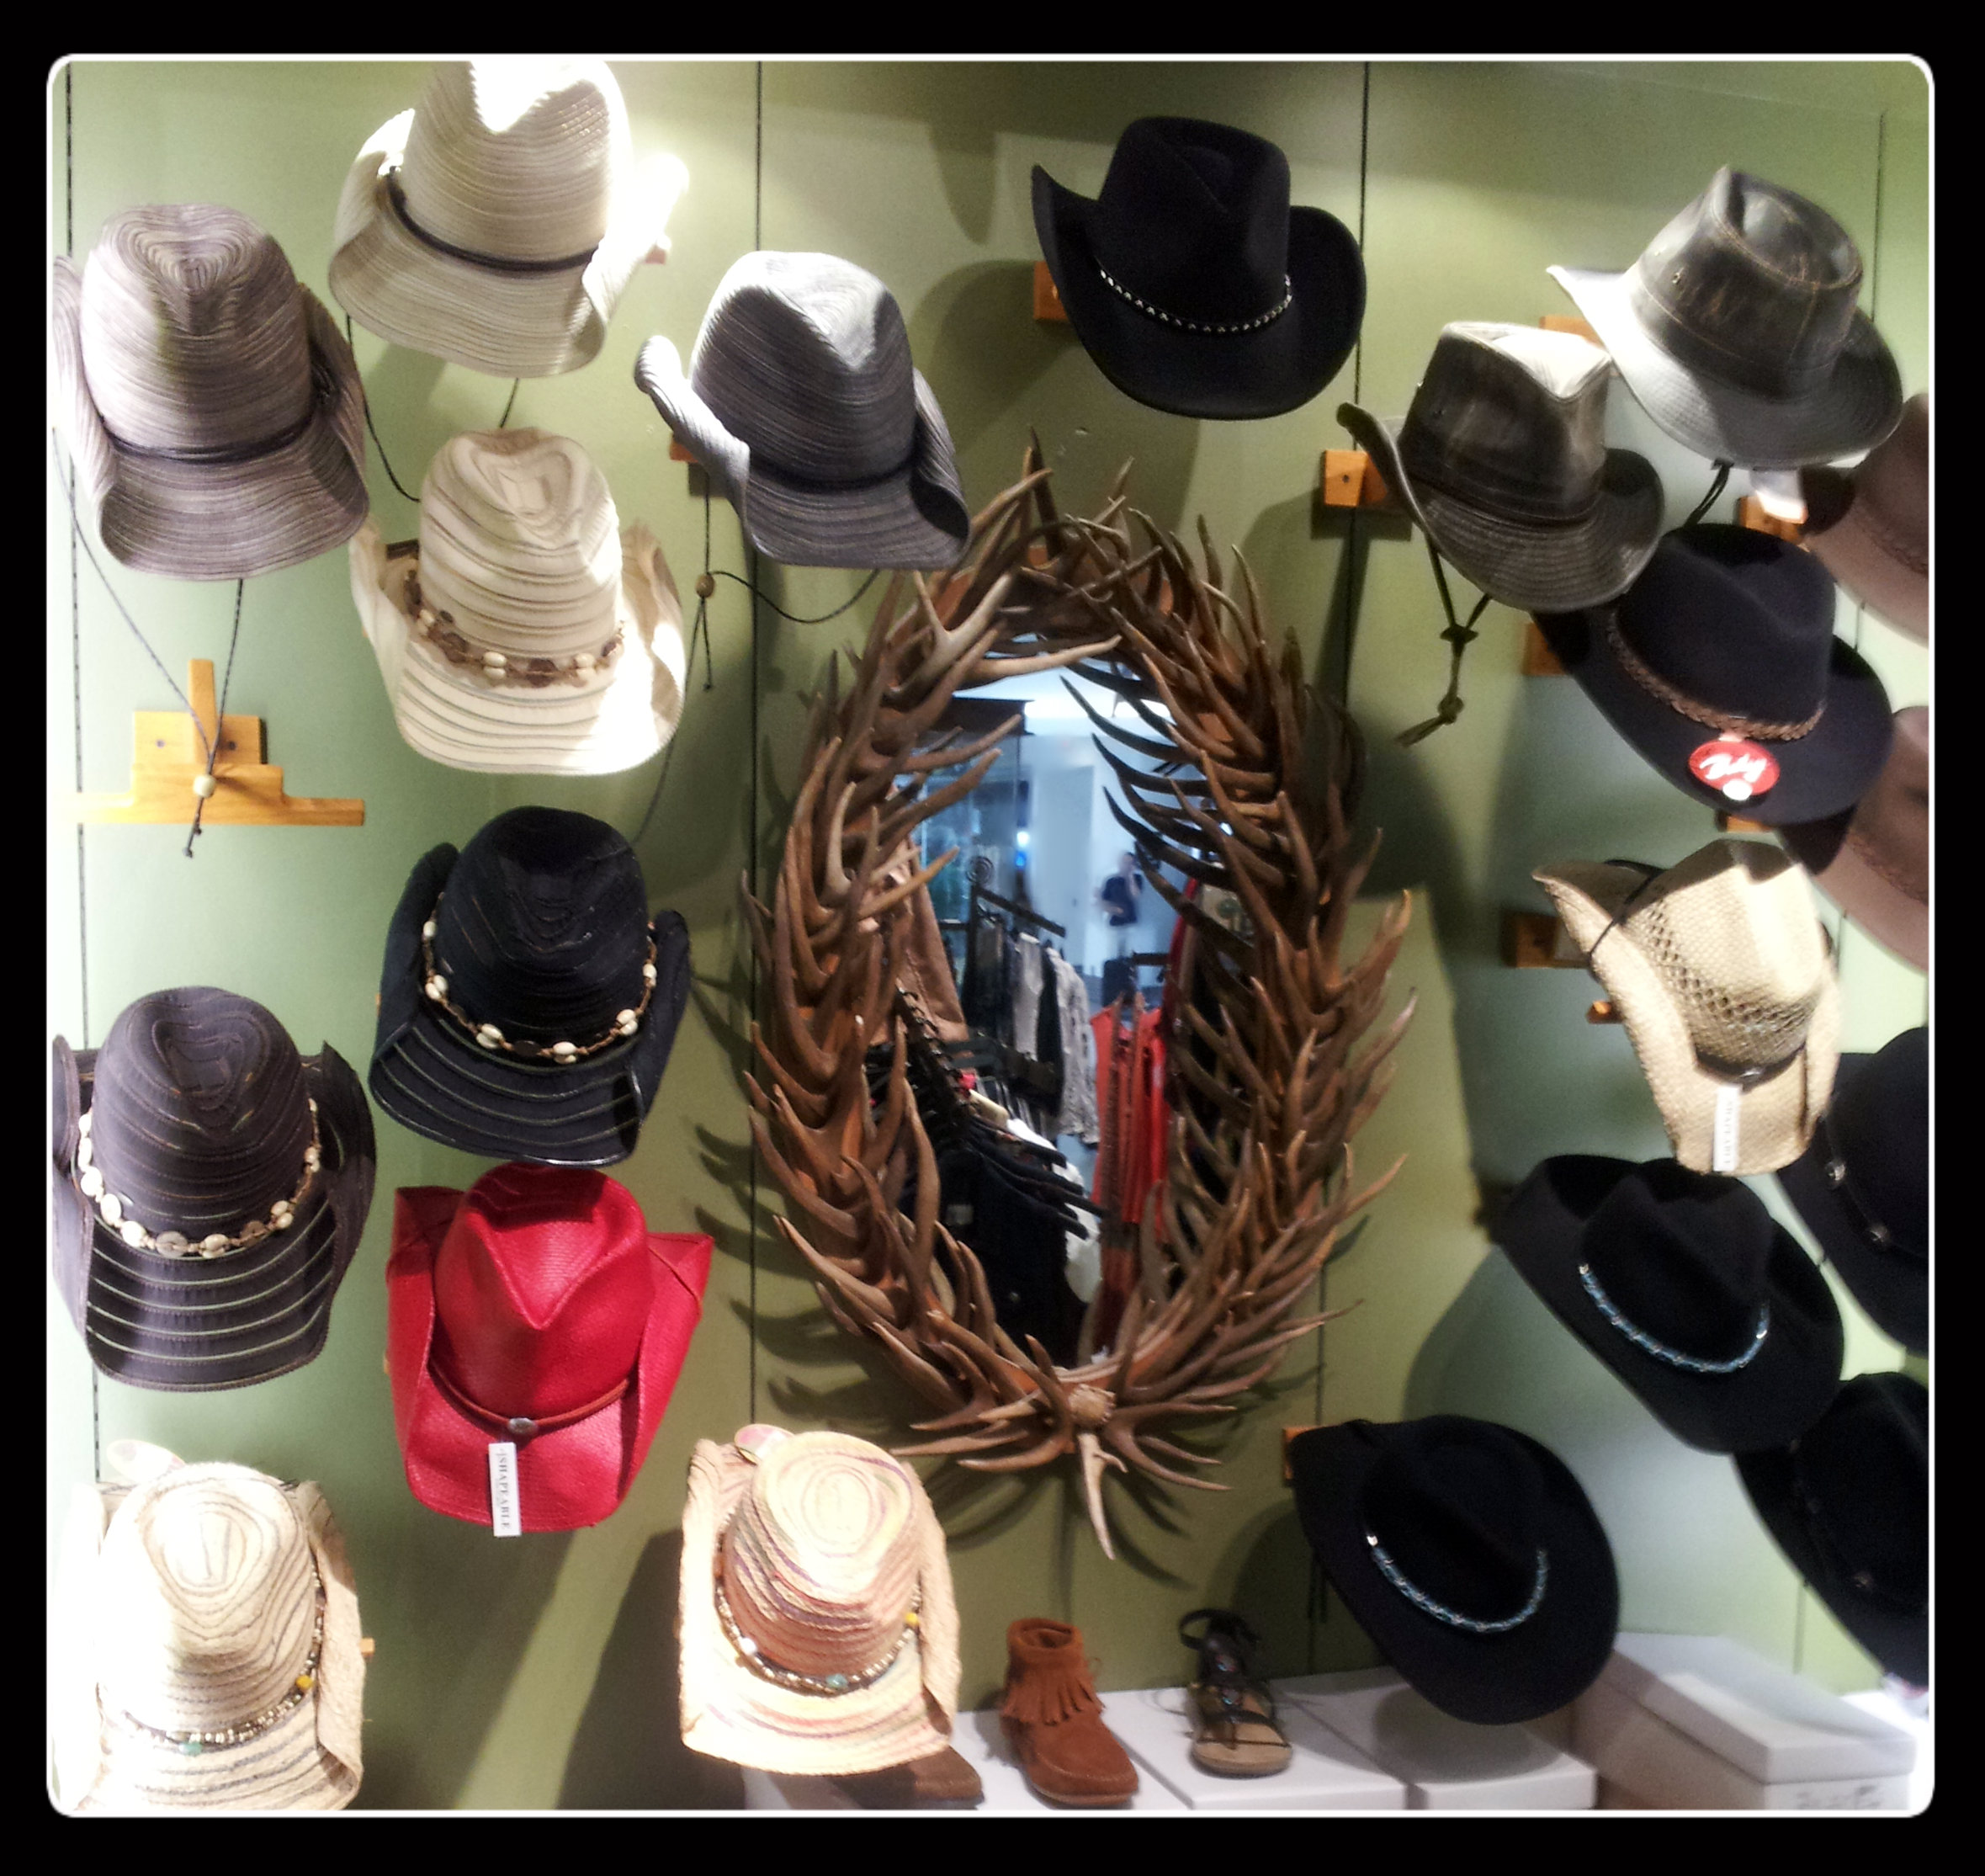 Let's add a hat  - I have to say I really liked some of these.